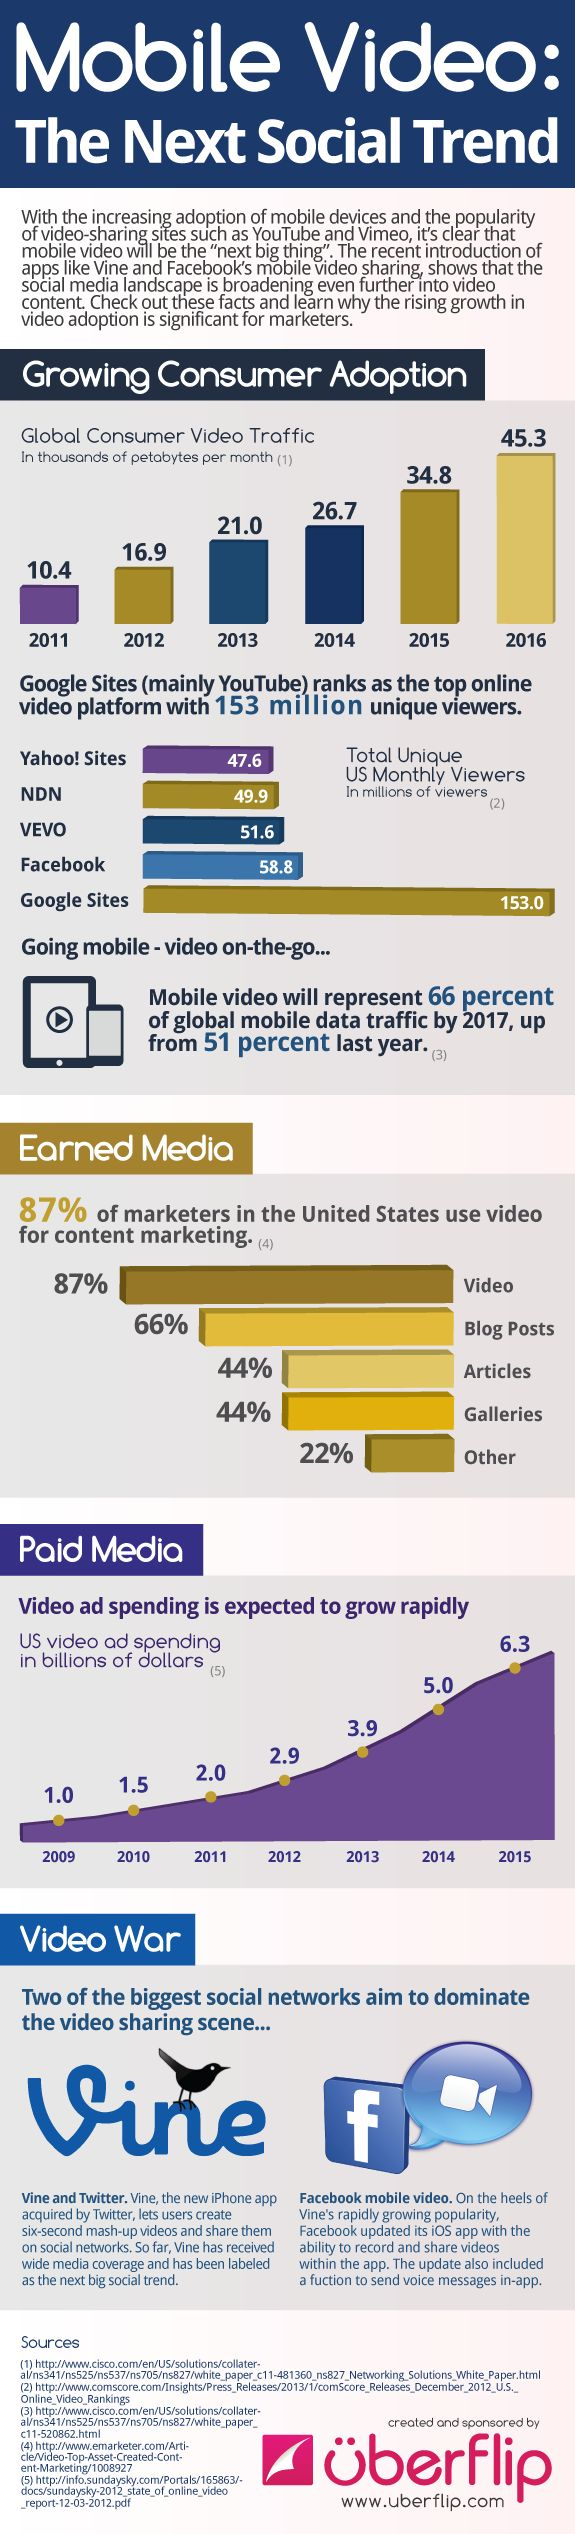 INFOGRAPHIC: Mobile Video – The Next Social Trend